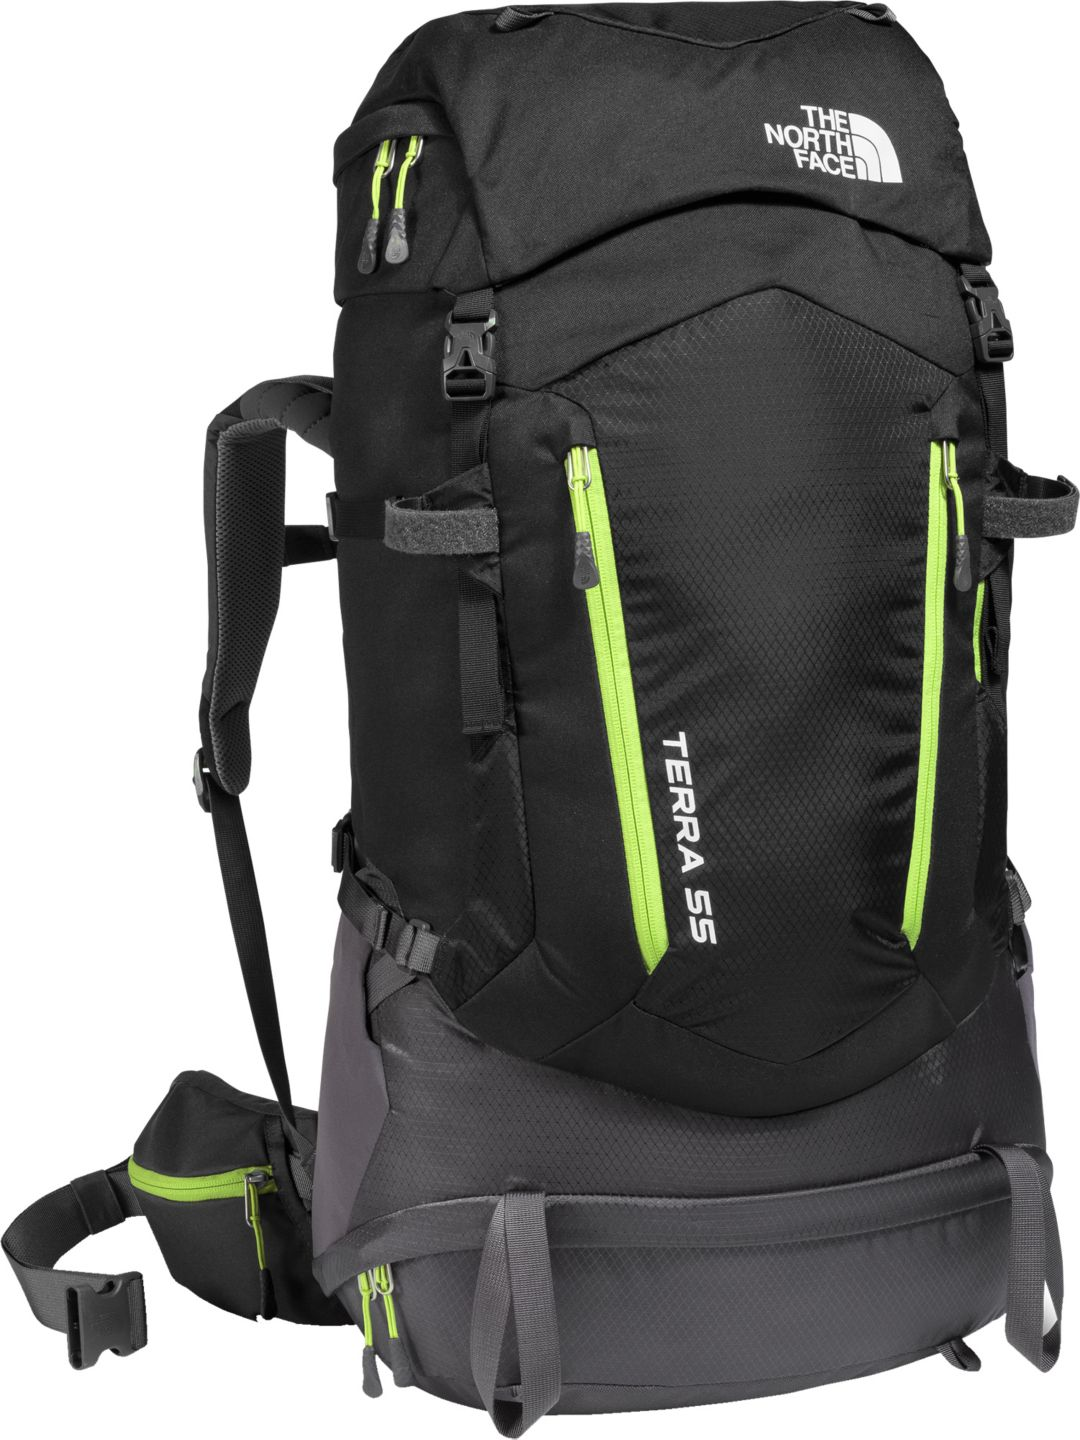 49bfdfbec18 The North Face Youth Terra 55L Internal Frame Pack - Prior Season ...